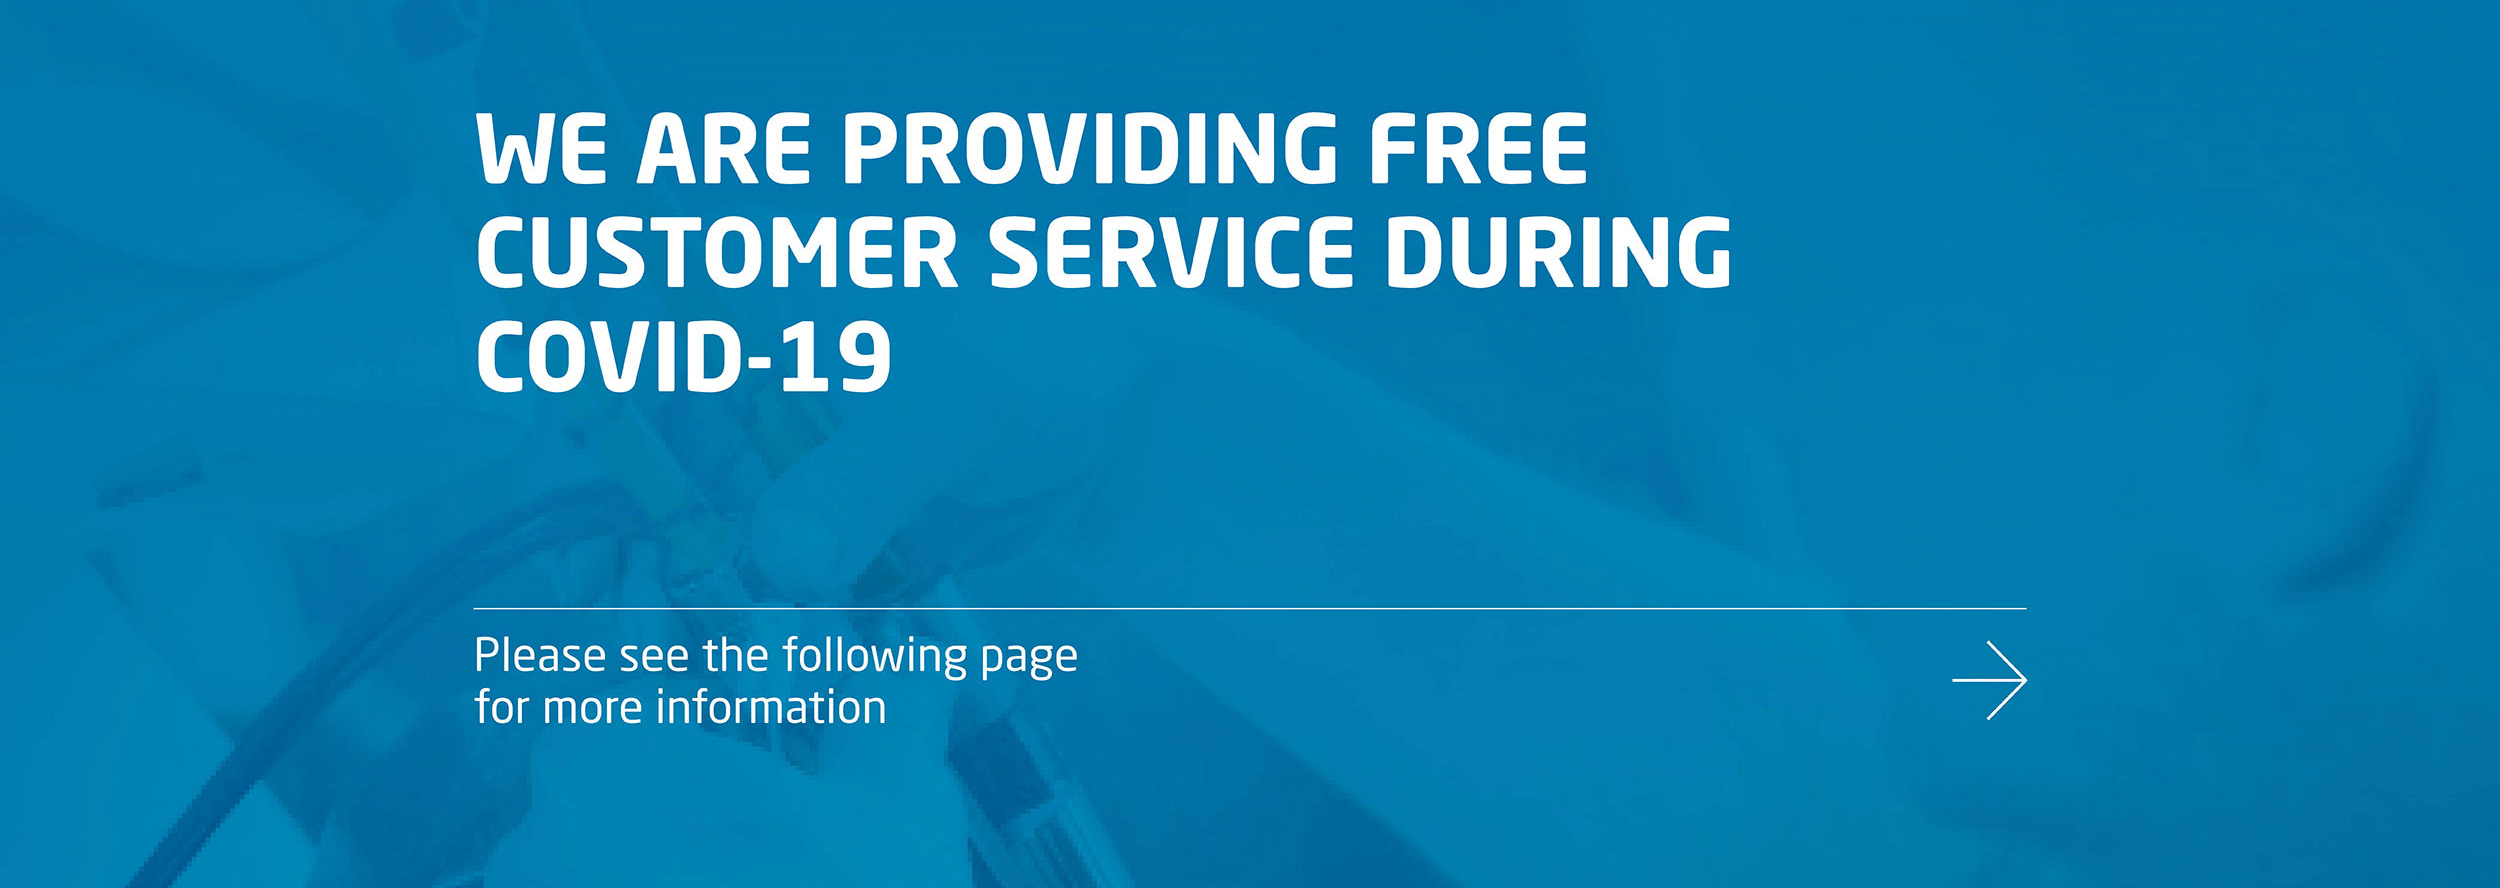 Free customer support during Covid-19